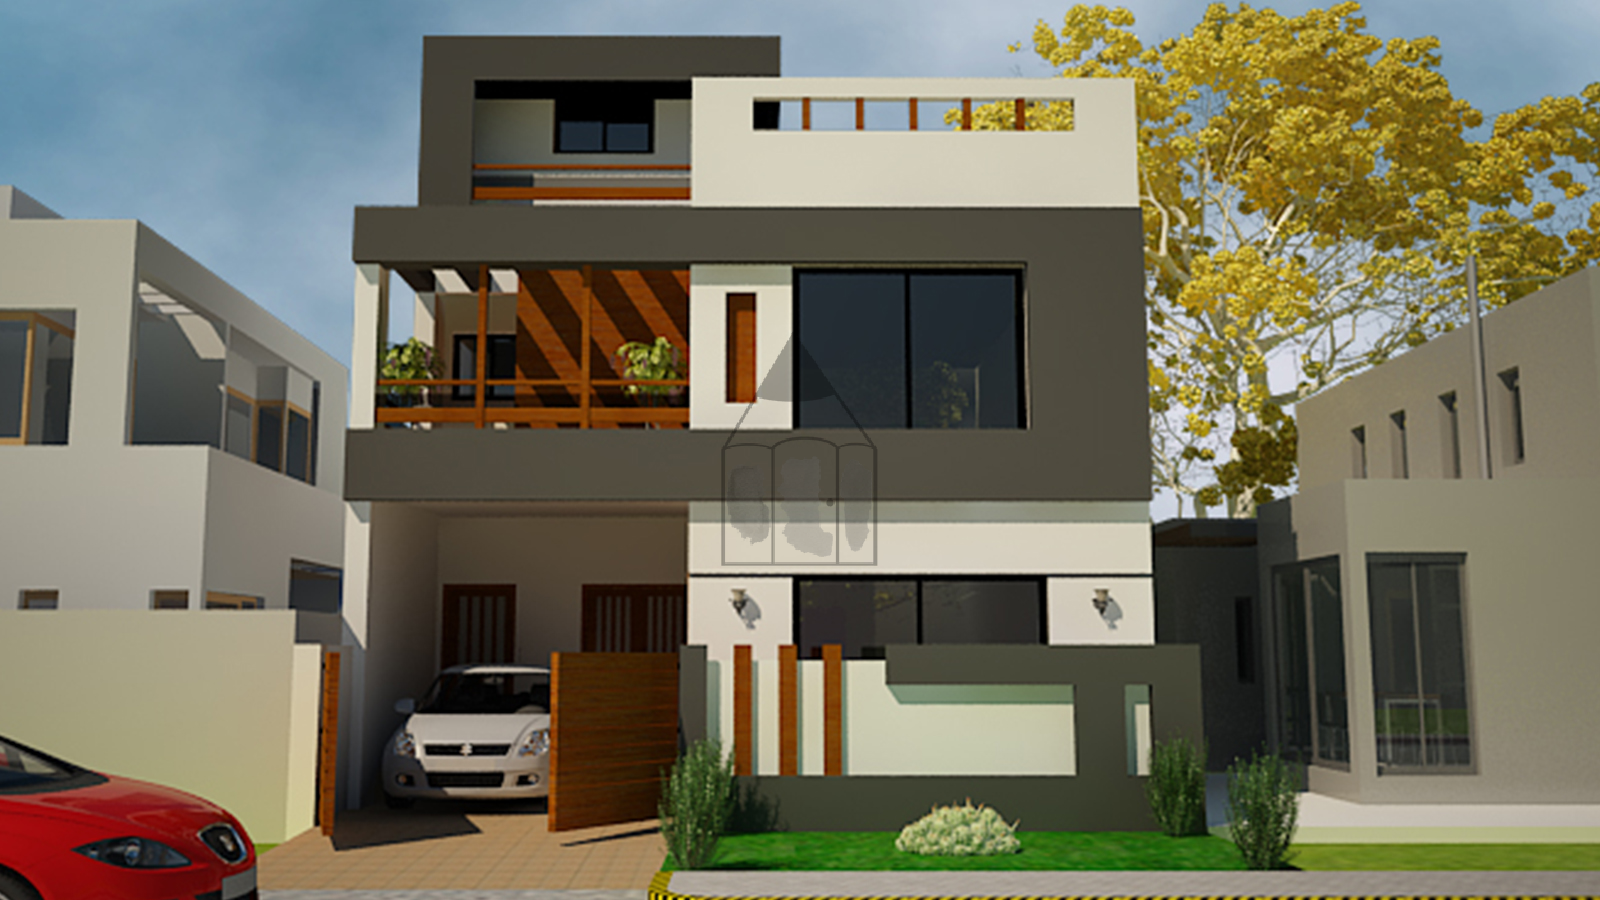 5 Marla House Front Design Gharplanspk Ashfaq House